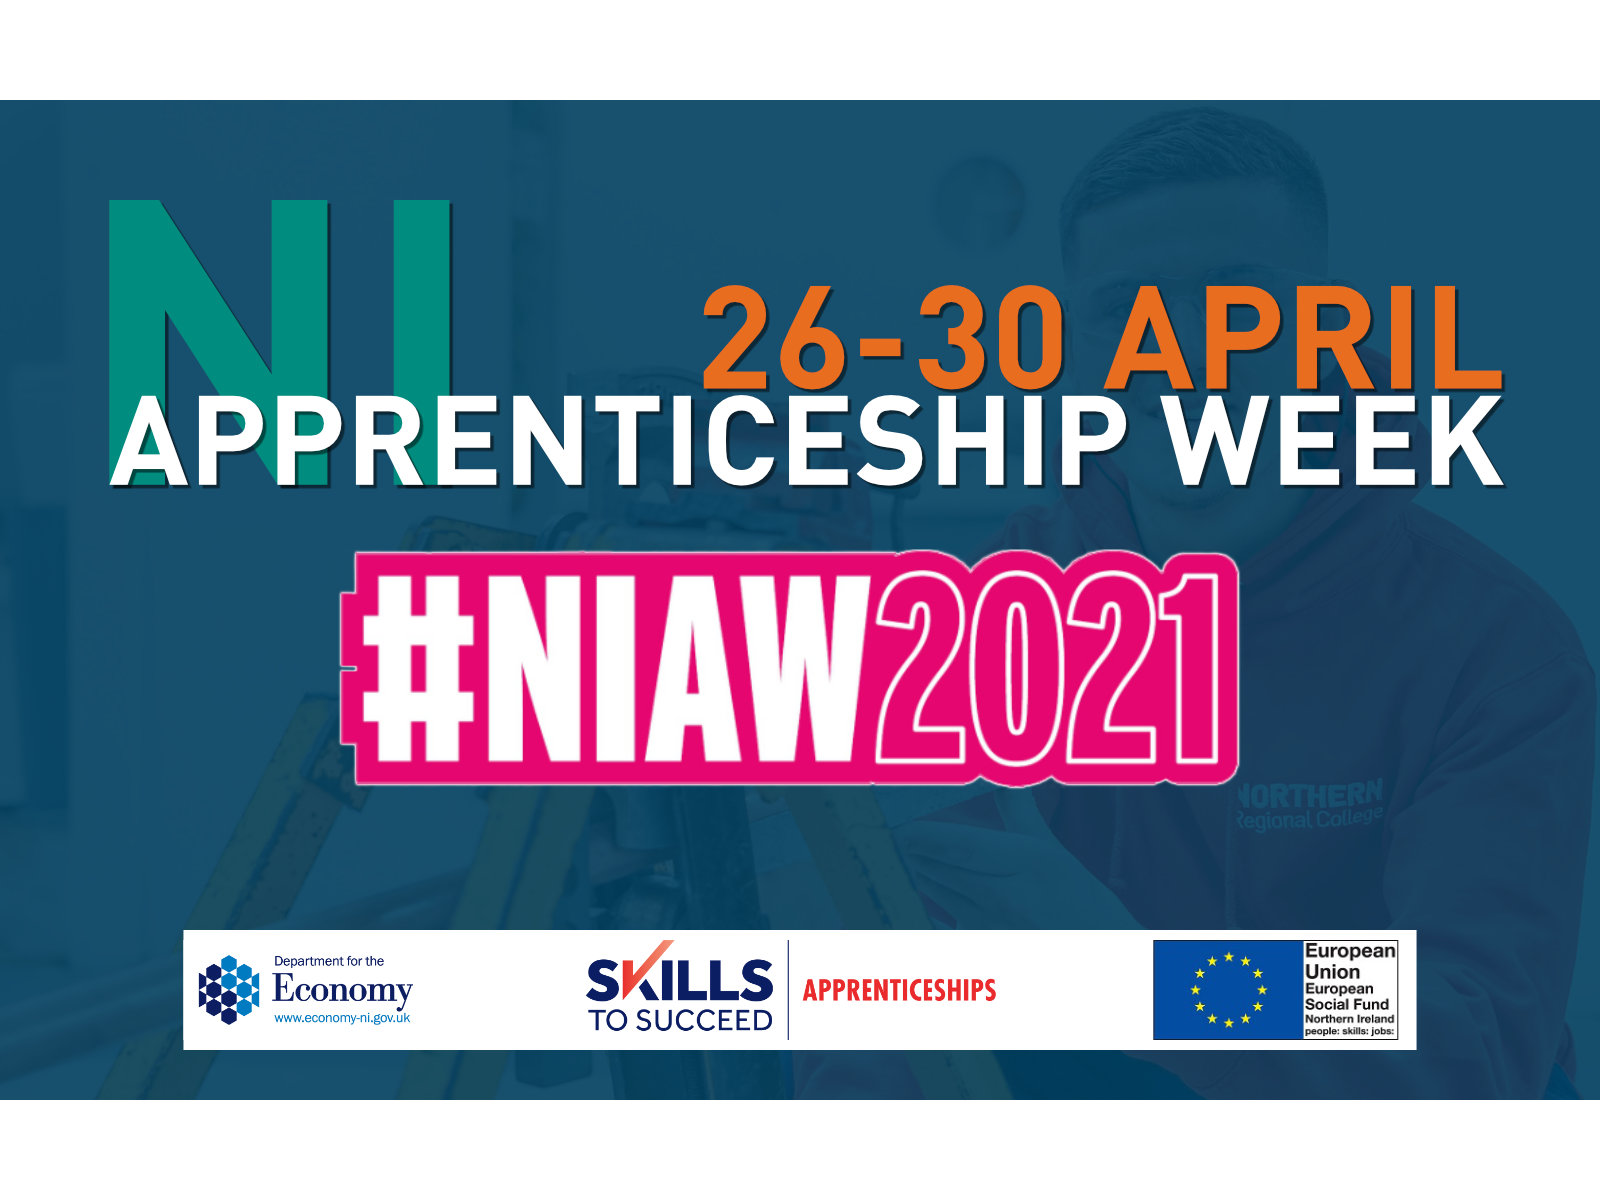 NI Apprenticeship Week - 26-30 April #NIAW2021